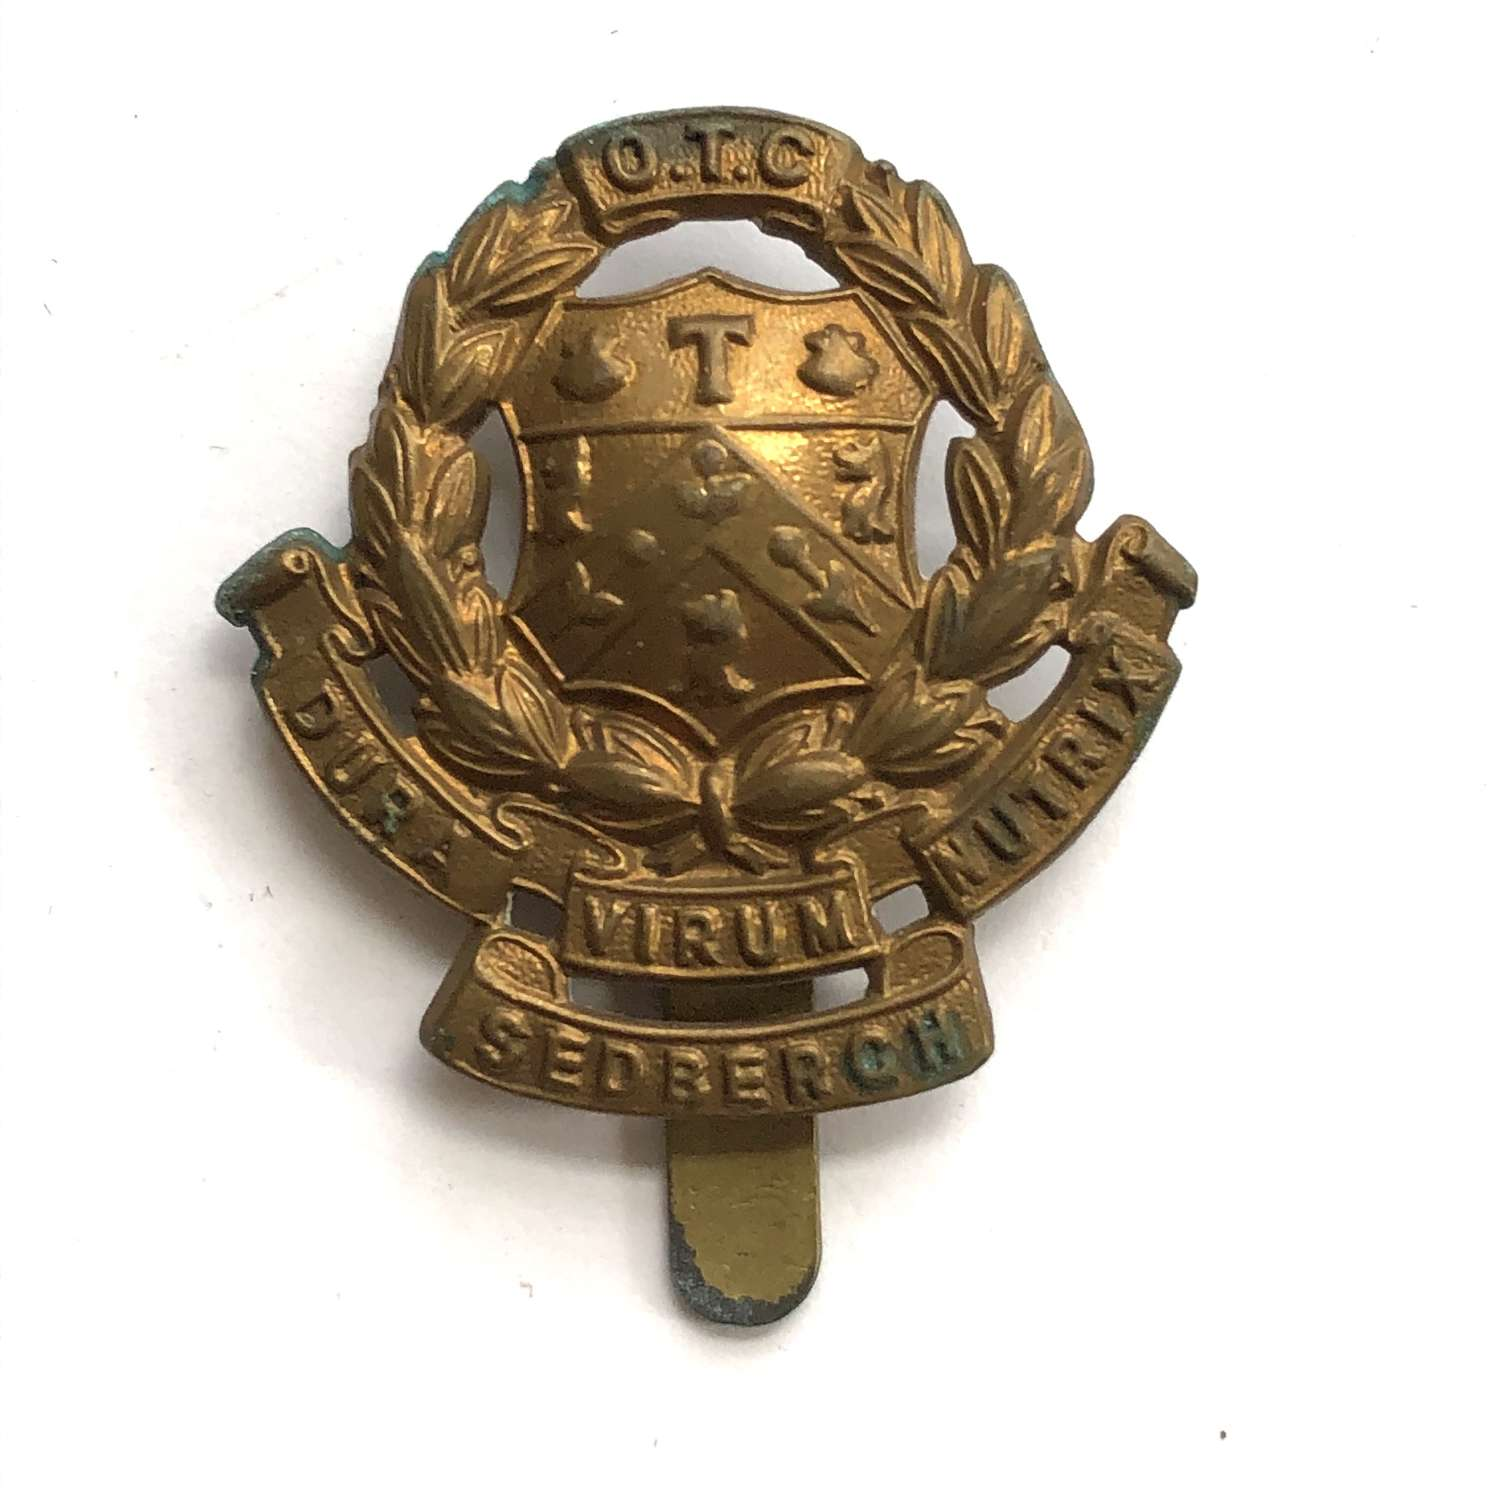 Sedburgh School OTC Yorkshire cap badge